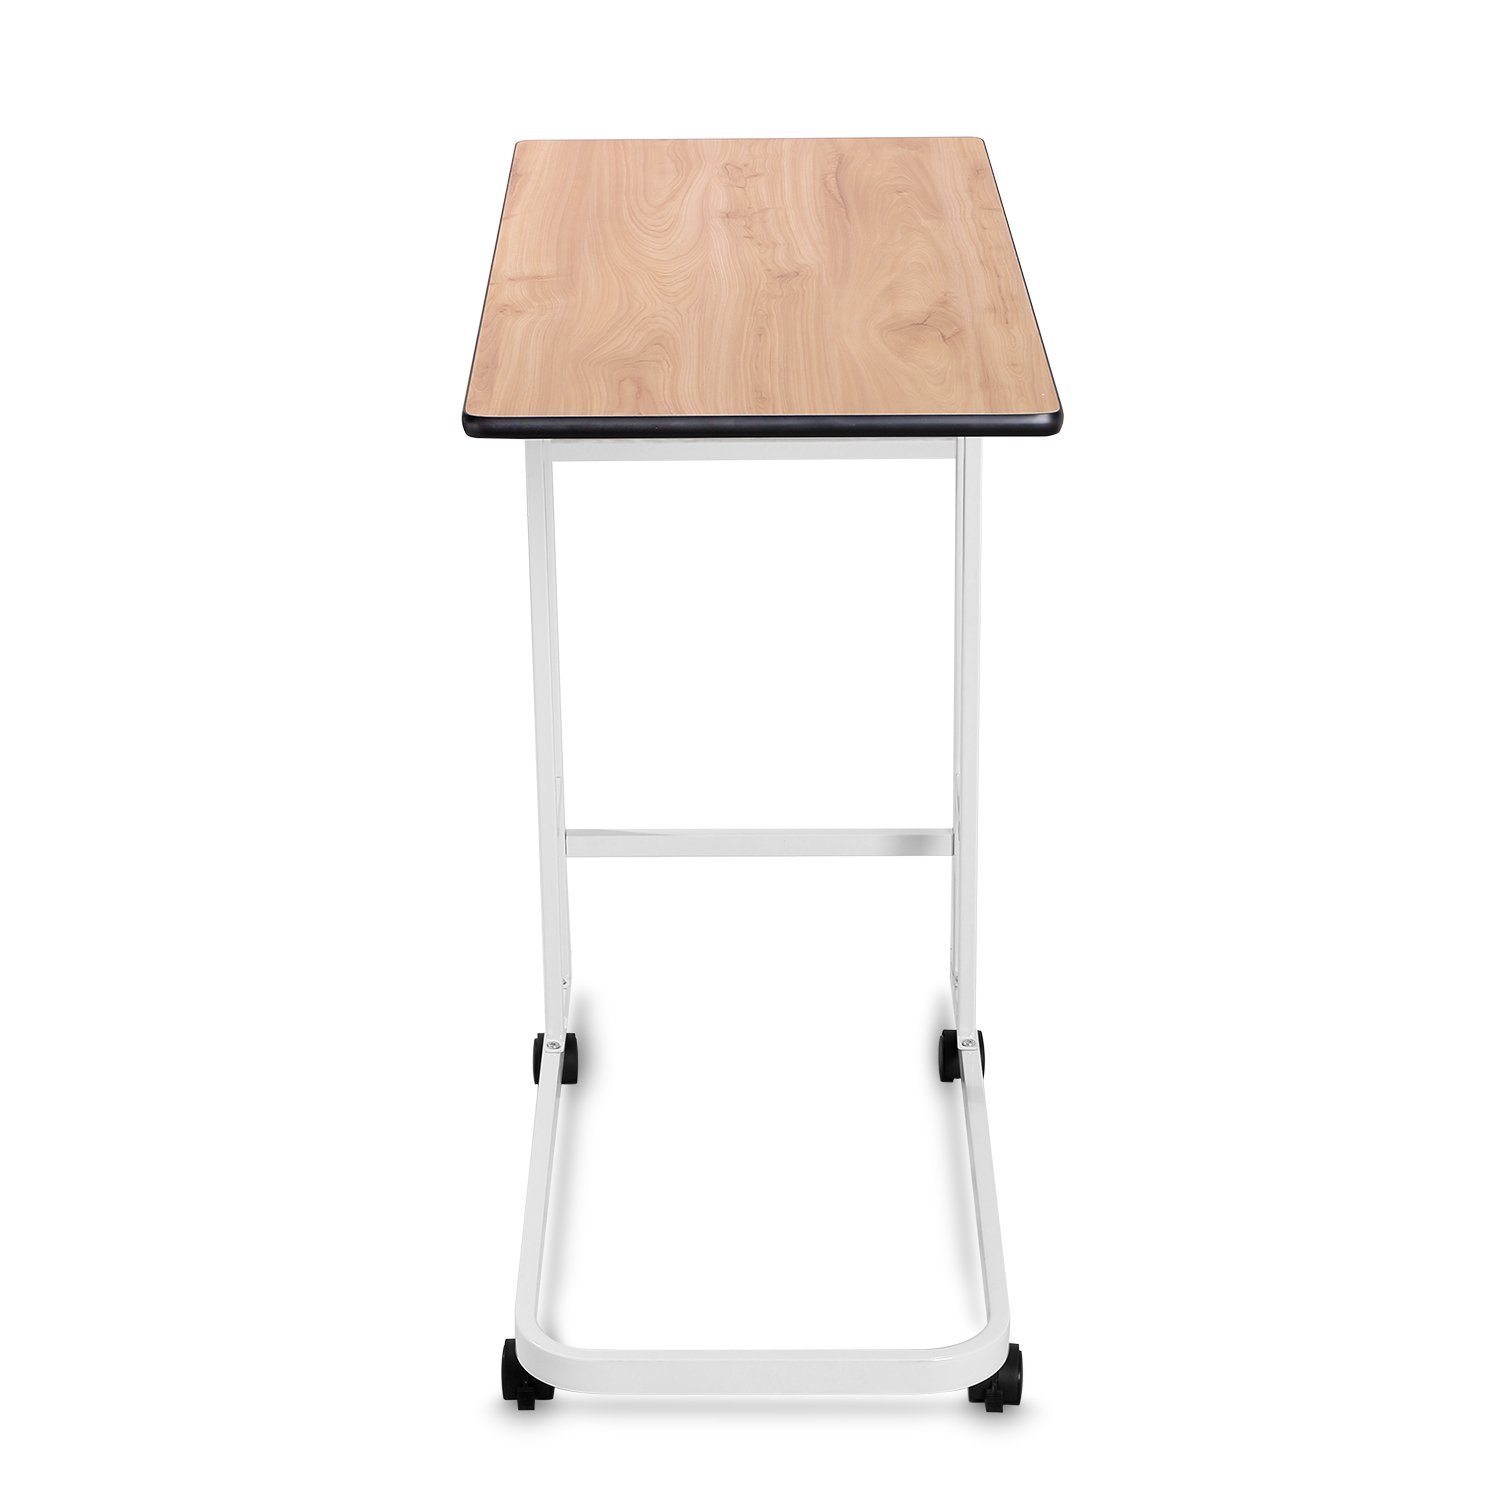 Amazon: BUREI Side Sofa Table Laptop Desk For Couch Snack Table Home  Office Furniture BUREI (Wood Grain): Kitchen & Dining